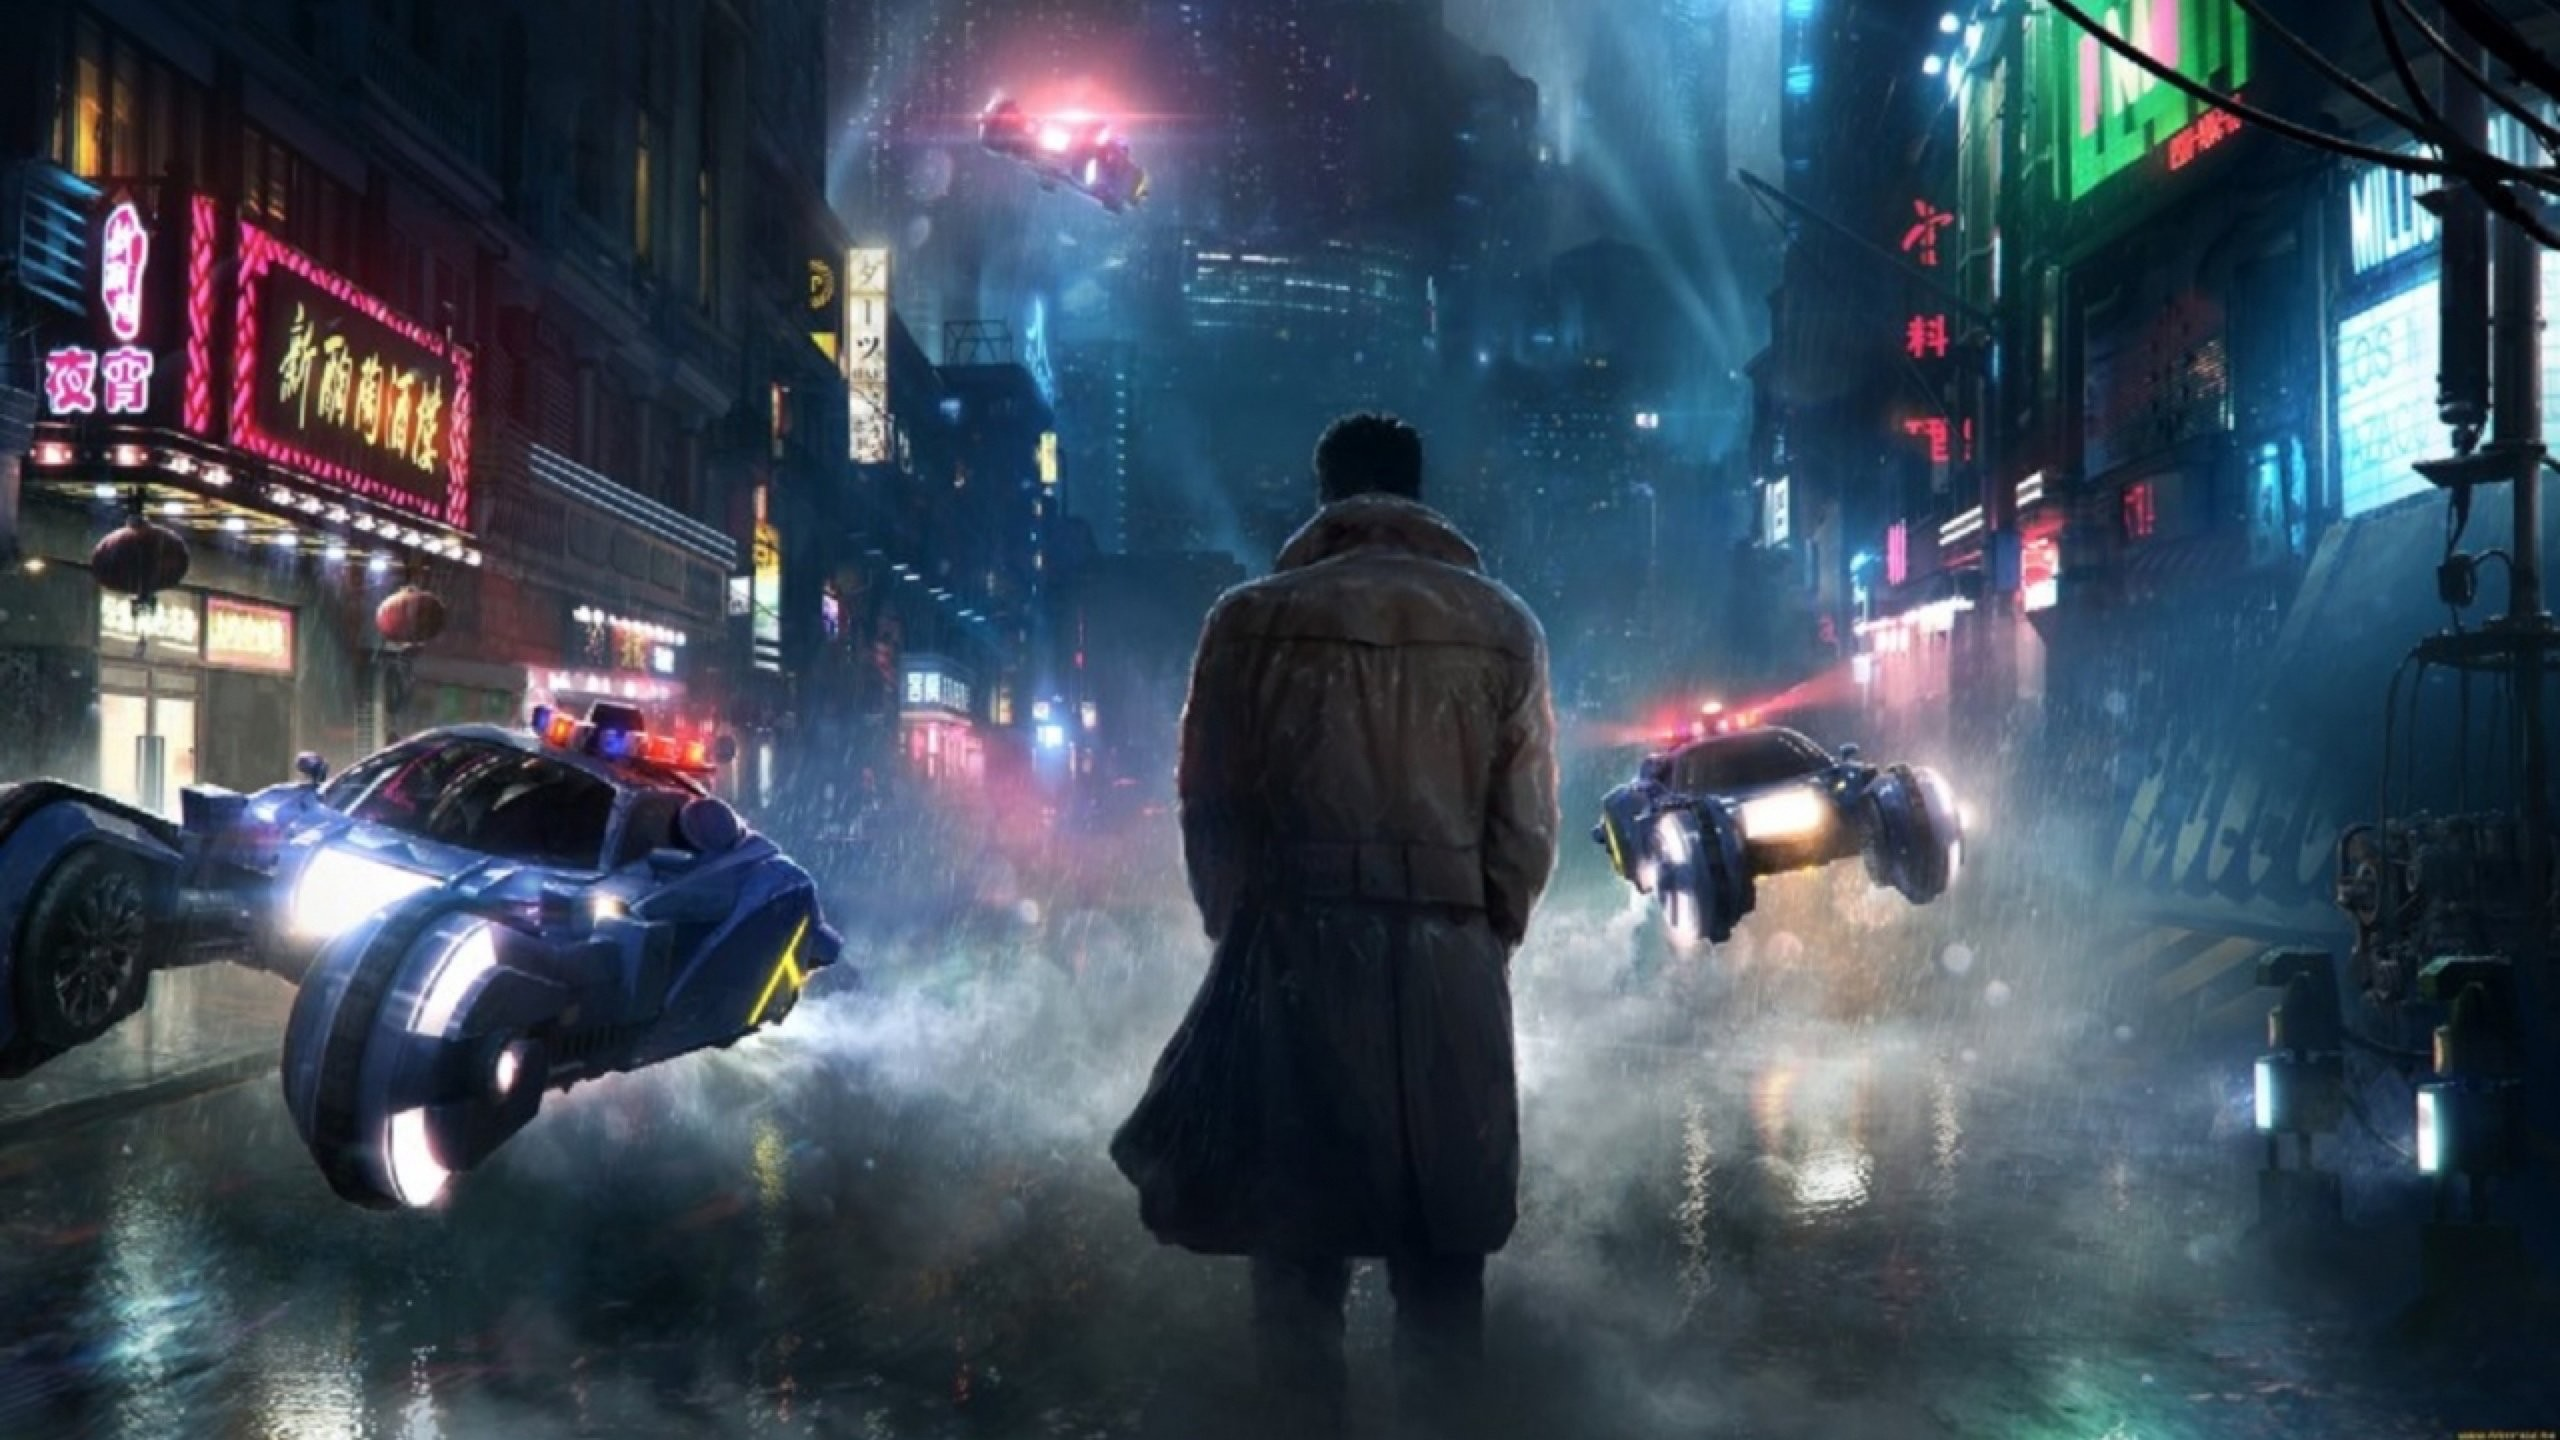 Res: 2560x1440, A long-awaited Blade Runner sequel came out this year: Blade Runner 2049.